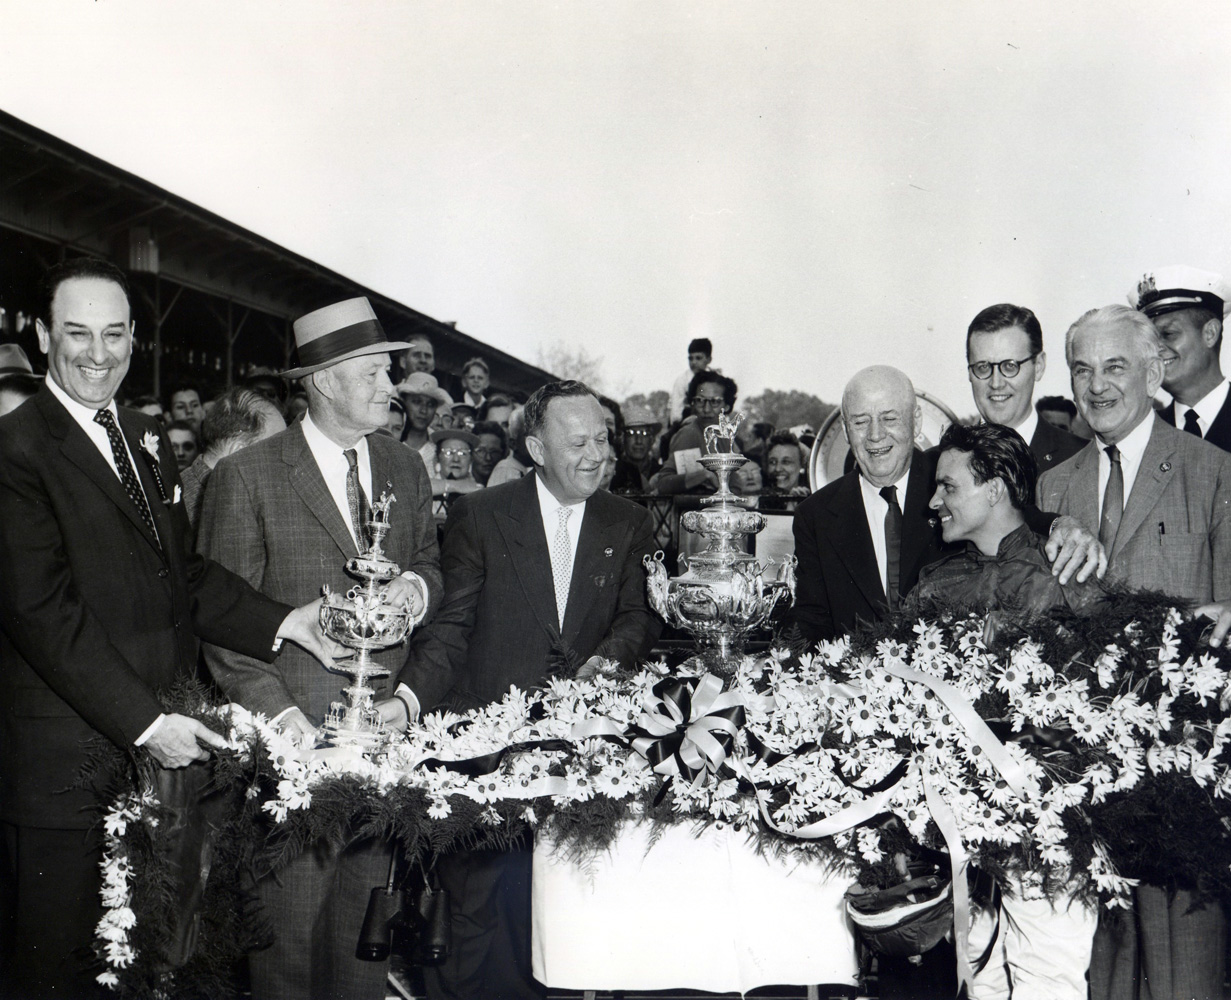 The winning connections of Tim Tam celebrating together during the trophy presentation for the 1958 Preakness Stakes (Pimlico Photo/Museum Collection)